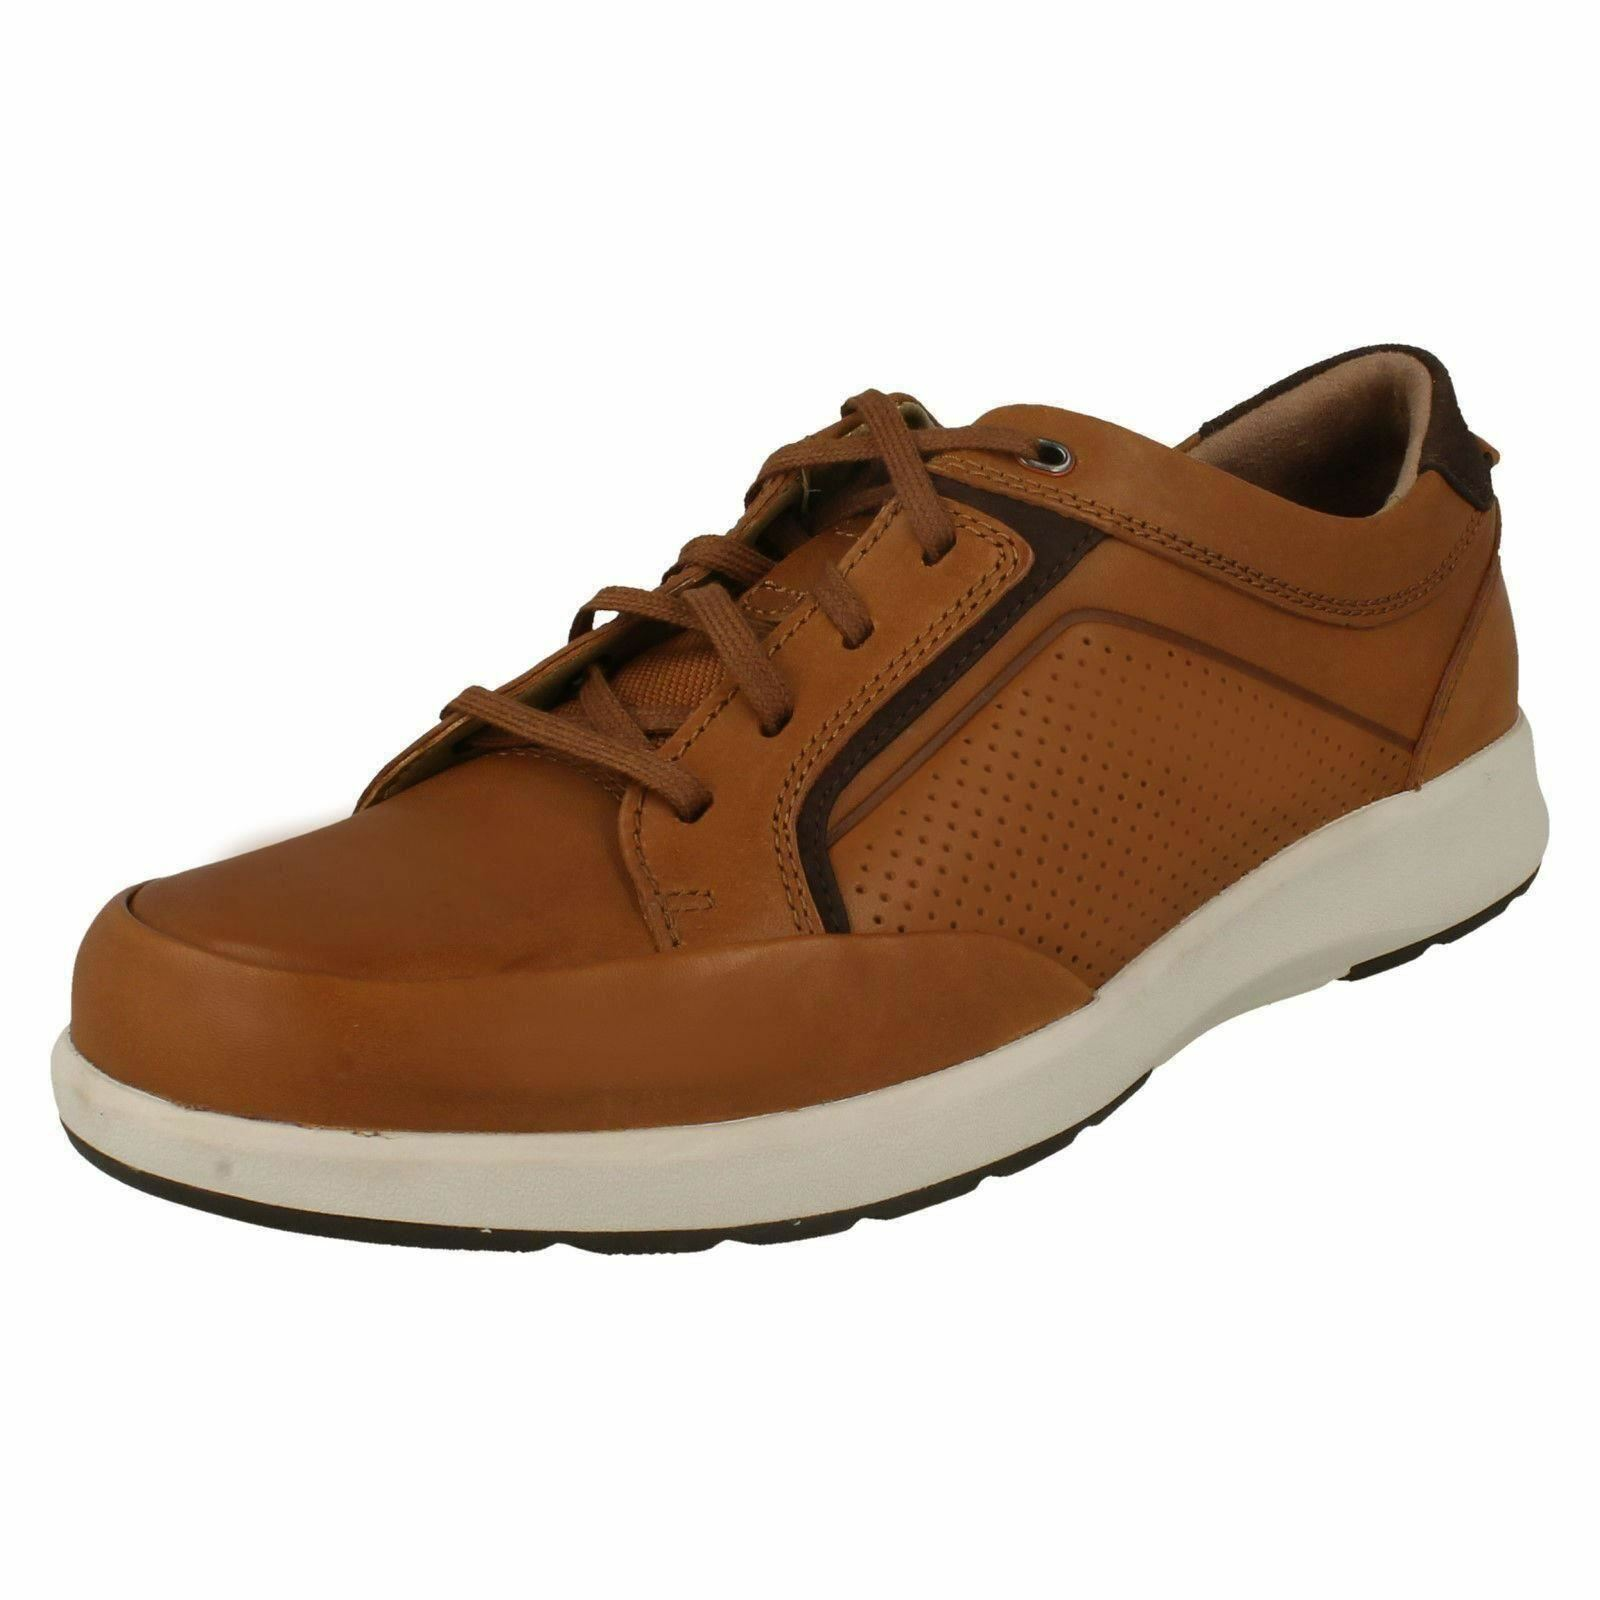 Mens Clarks Unstructured Un Trail Form Leather Casual Lace Up shoes